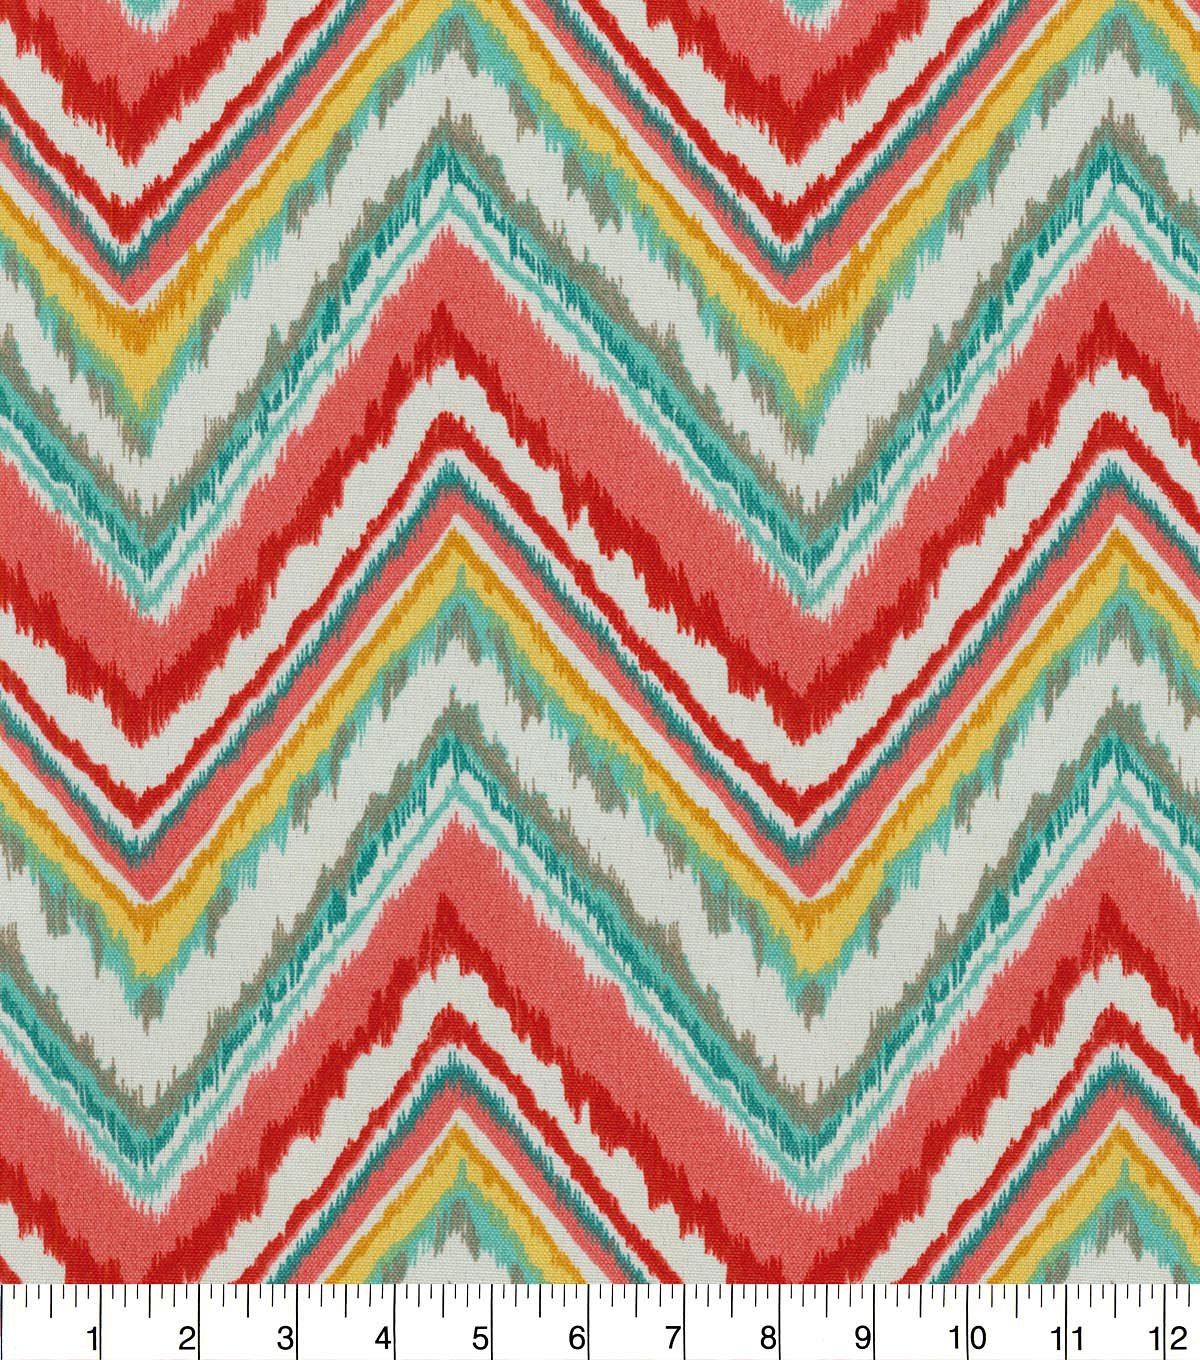 Dena Design Home Decor 8\u0022x8\u0022 Swatch-Chevron Charade Watermelon